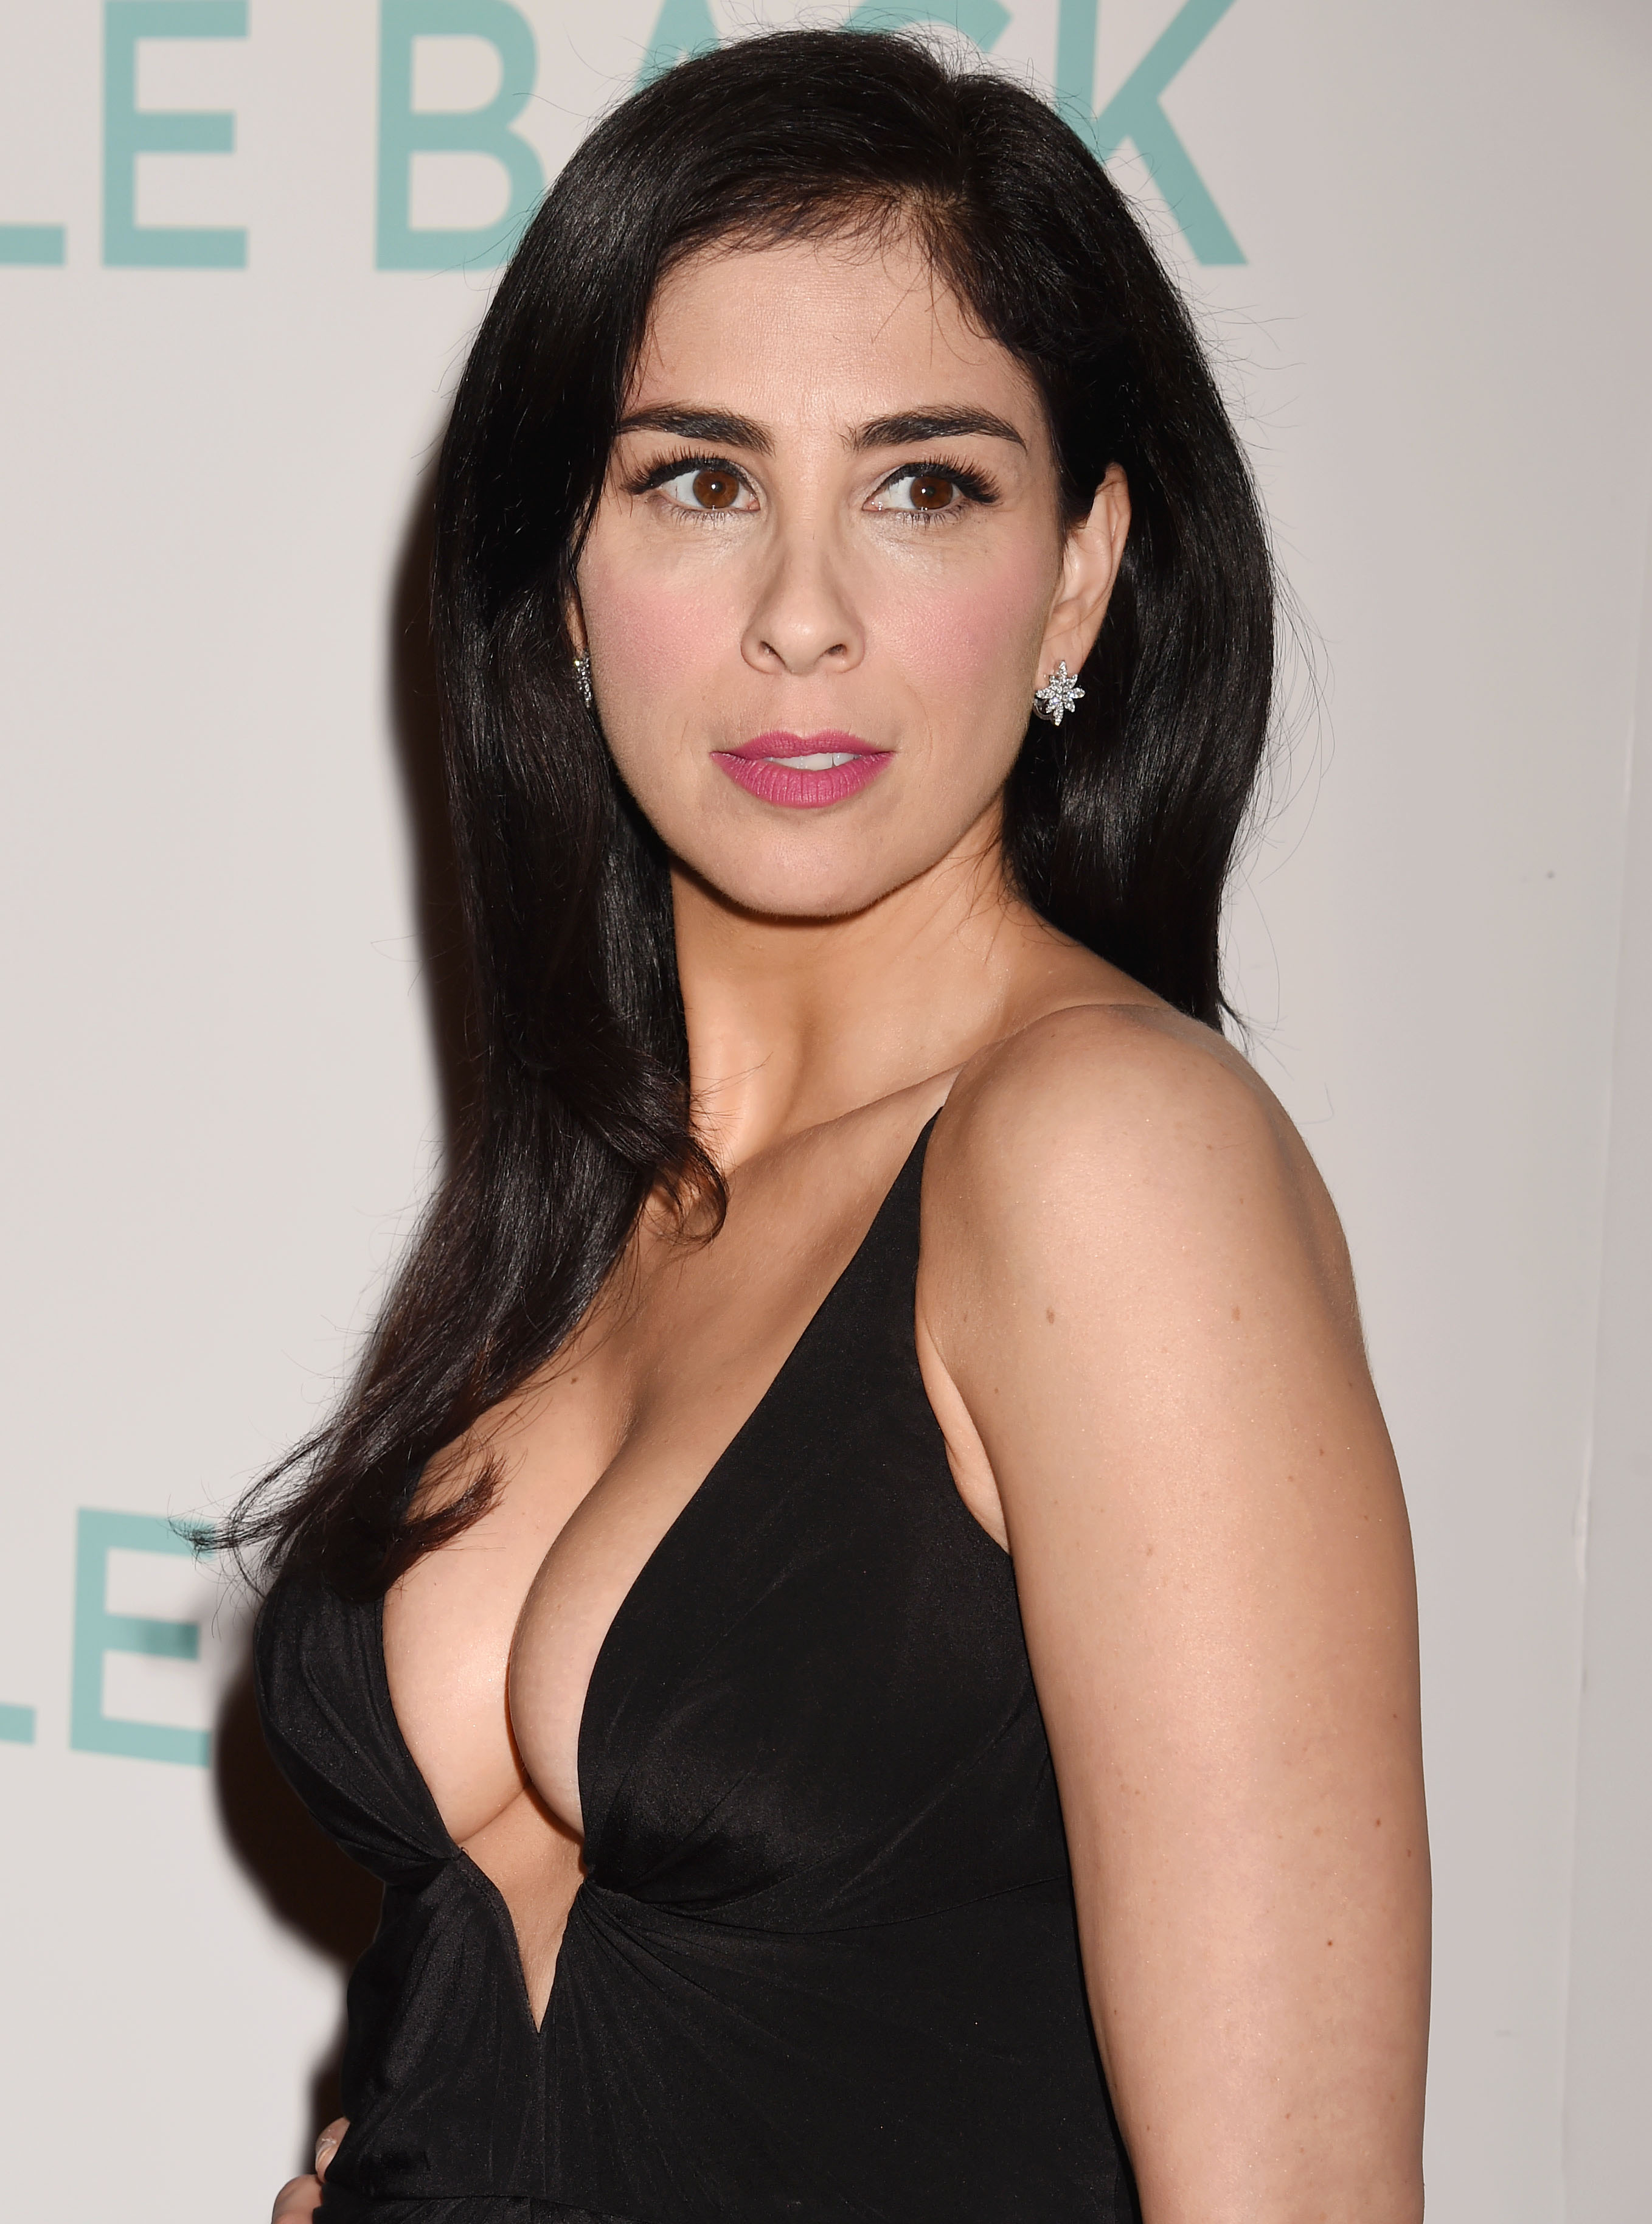 Sarah Silverman Interview: 'I Smile Back' Drama Role | Time